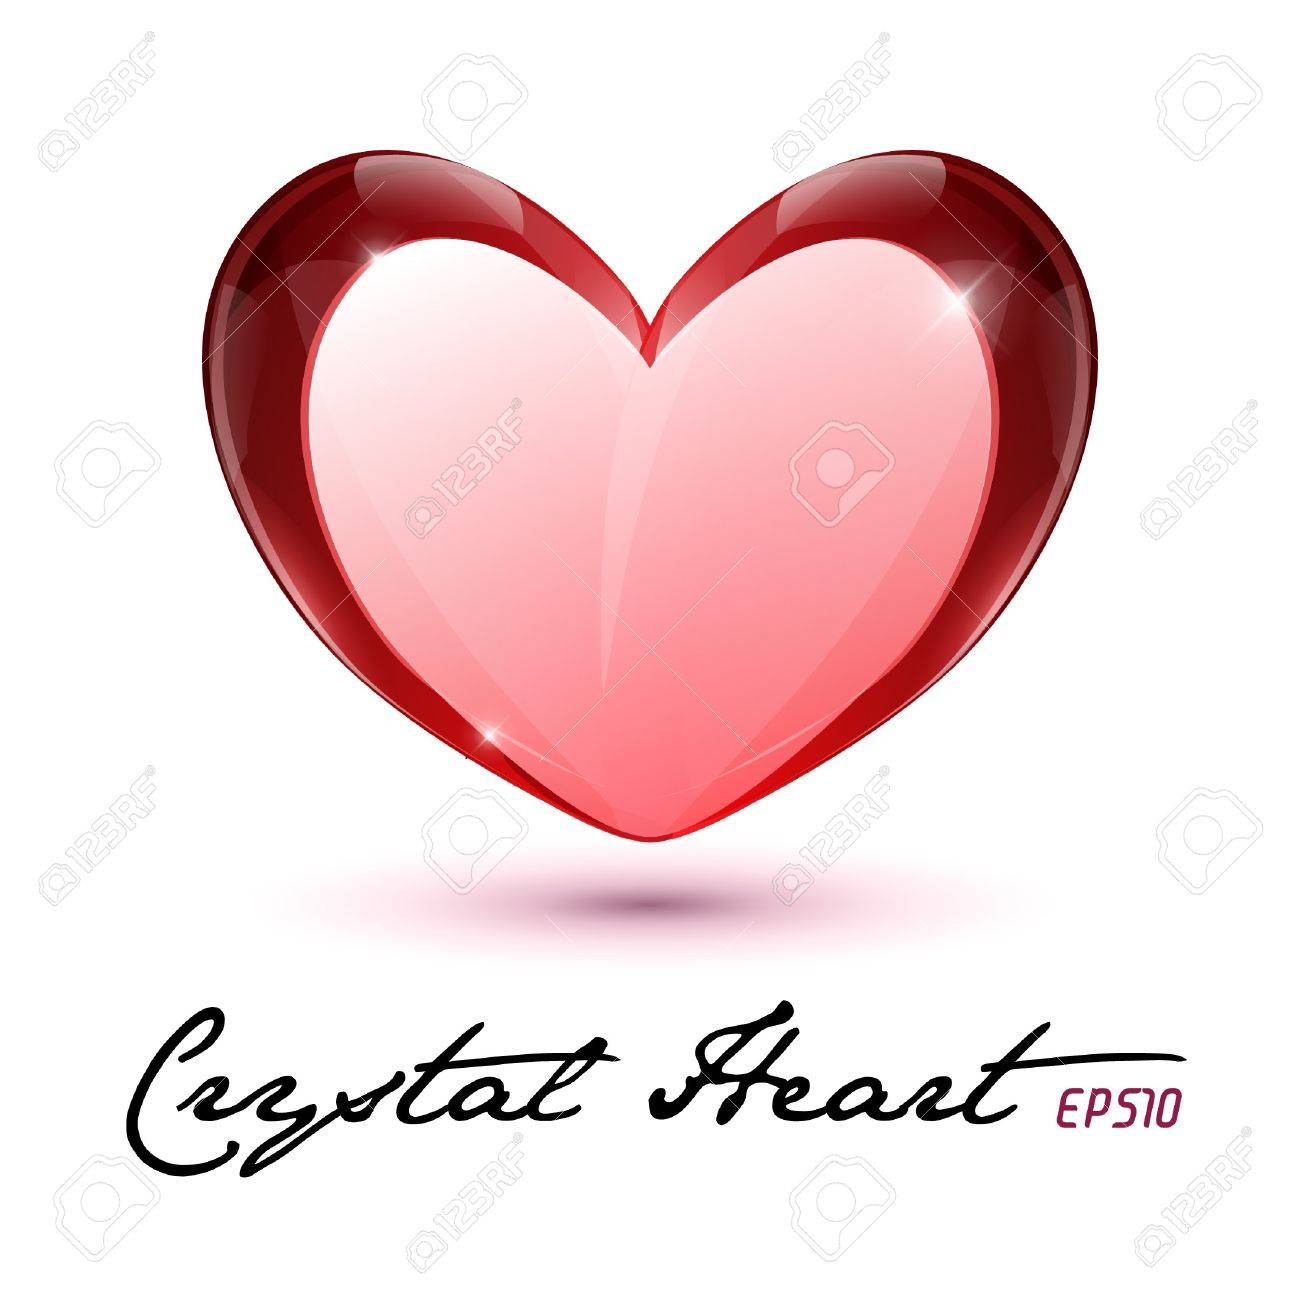 Crystal Heart Shiny Glass Rock Red Valentine s Day  illustration Postcard Or Banner Stock Vector - 17311062